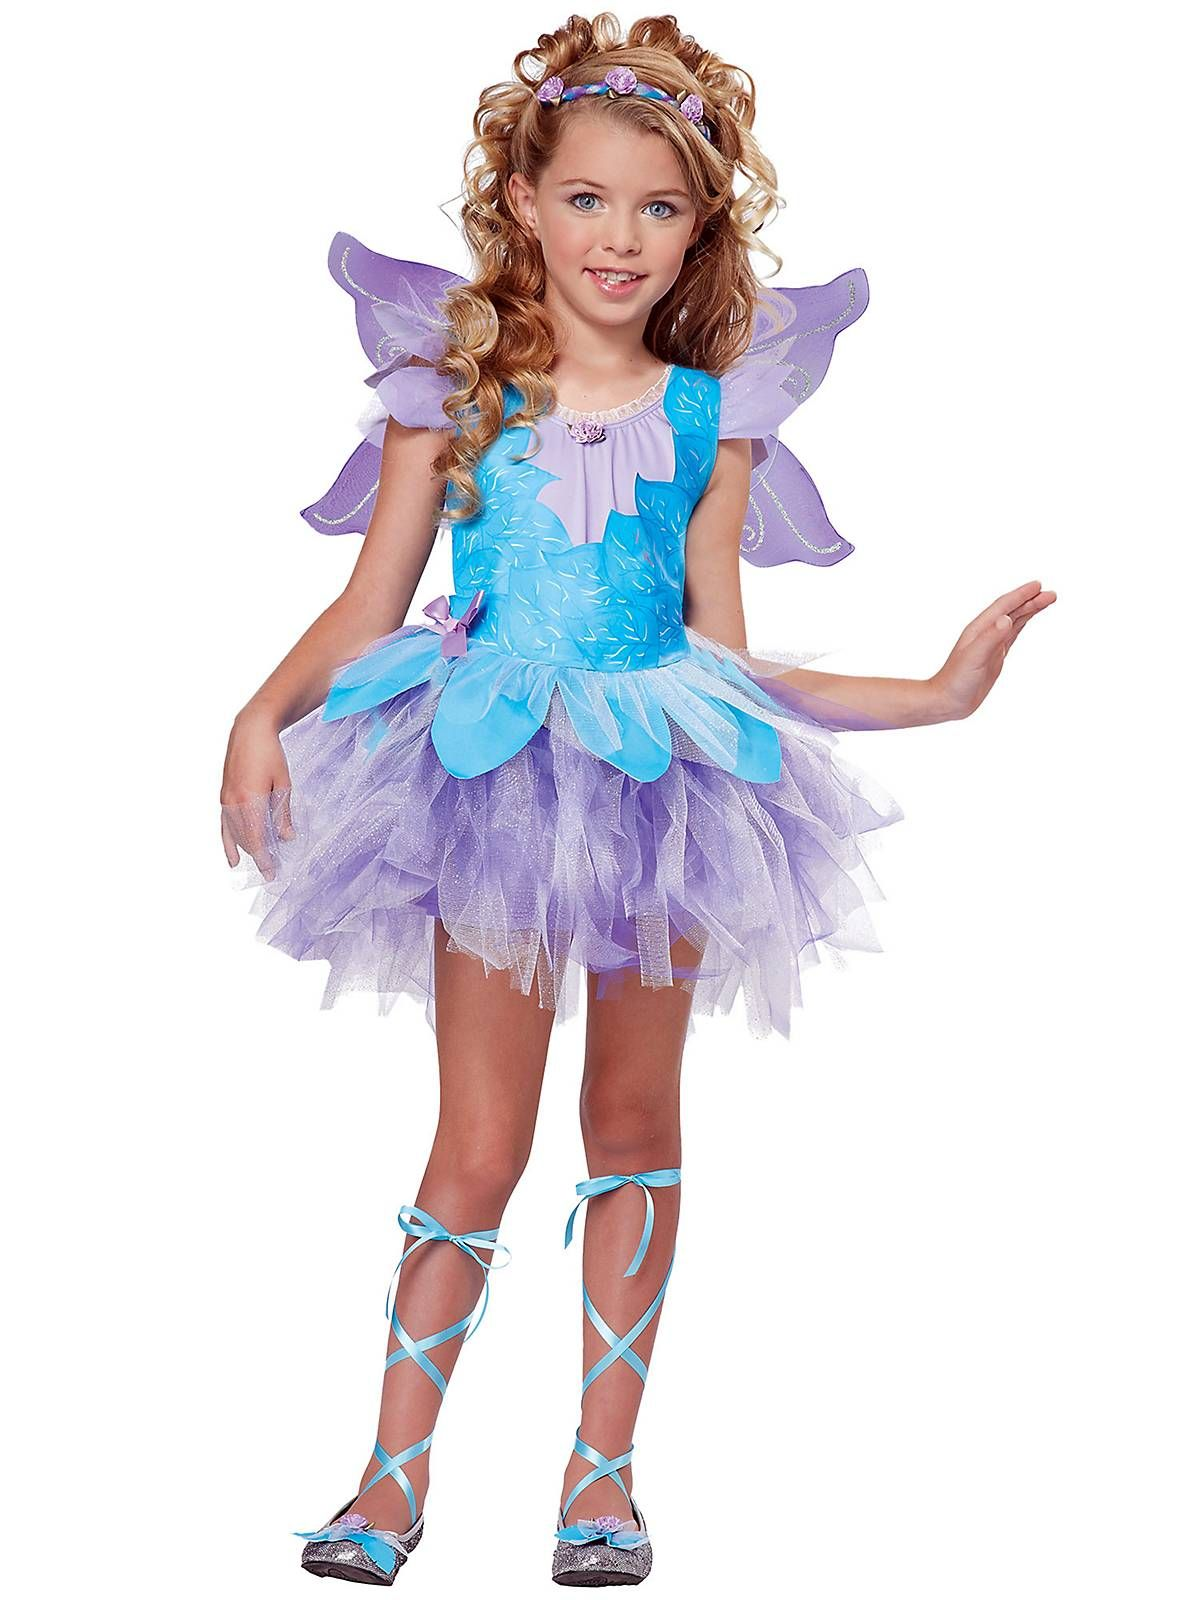 Girlu0027s Lilac Fairy Costume | Wholesale Fairy Costumes for Girls  sc 1 st  Pinterest & Girlu0027s Lilac Fairy Costume | Wholesale Fairy Costumes for Girls ...